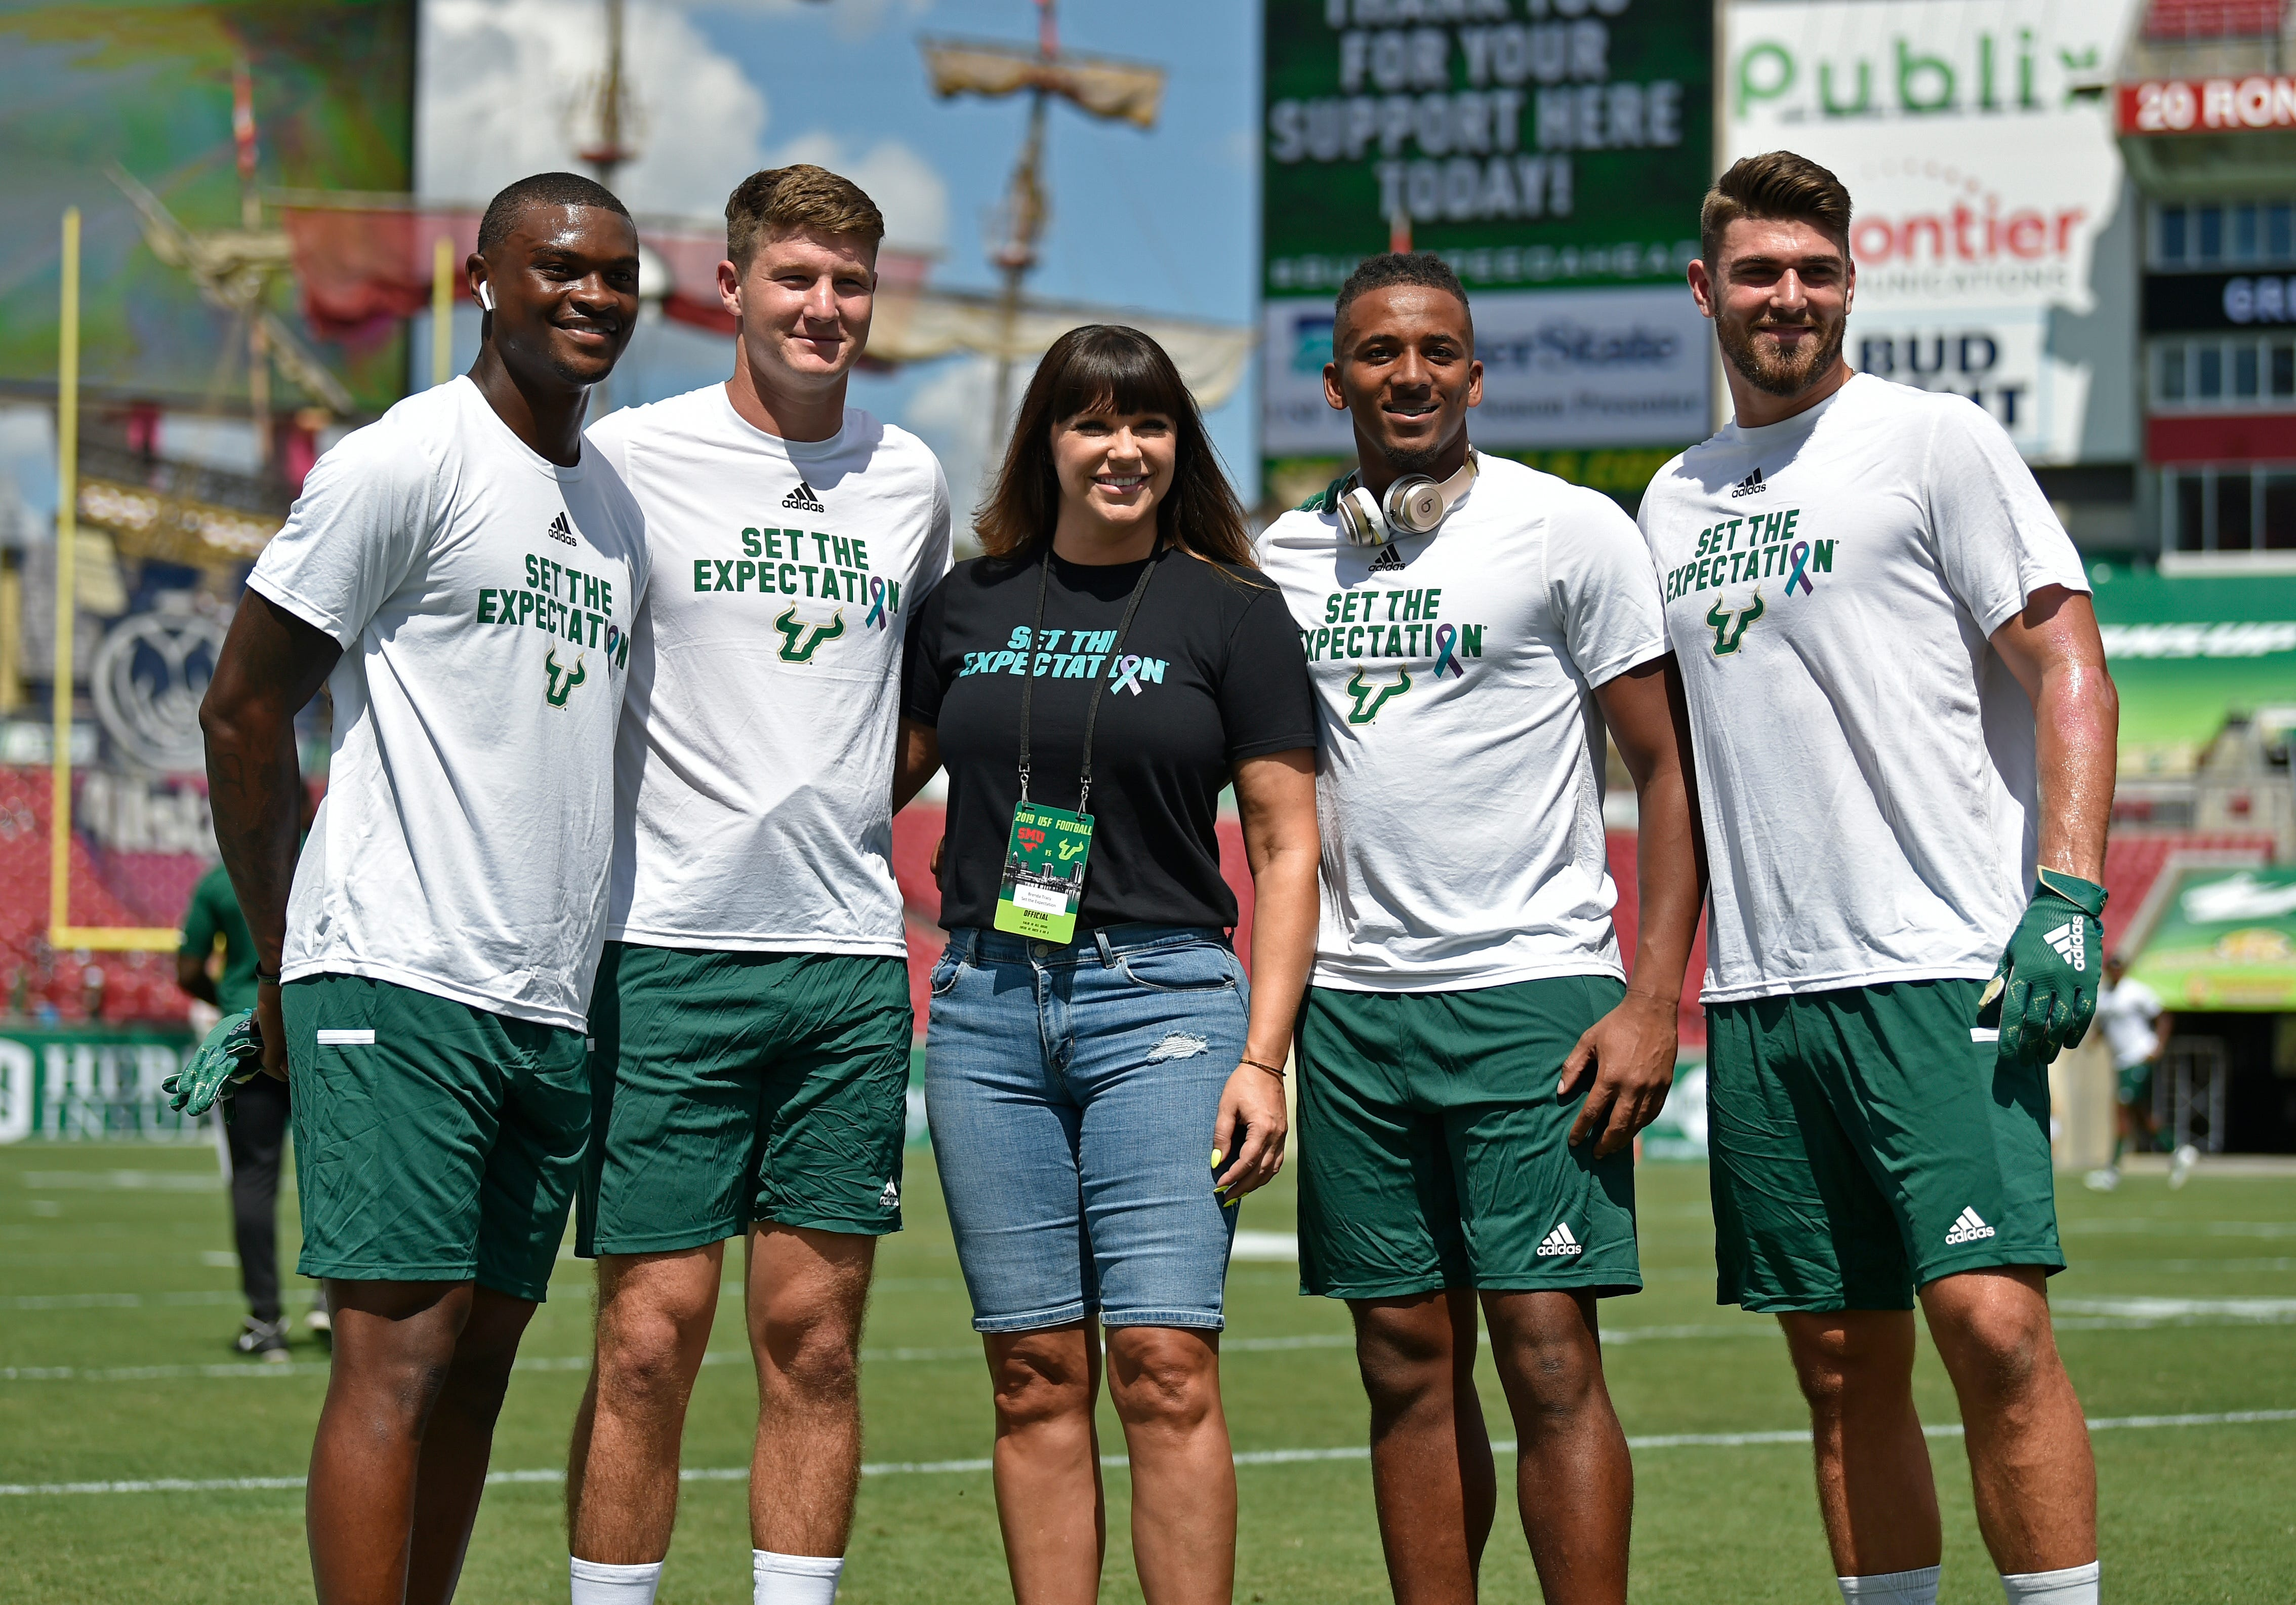 Rape survivor Brenda Tracy and University of South Florida football players show support for her nonprofit, Set The Expectation, dedicated to preventing sexual assault. Photographed Sept. 28, 2019, in Tampa Florida.